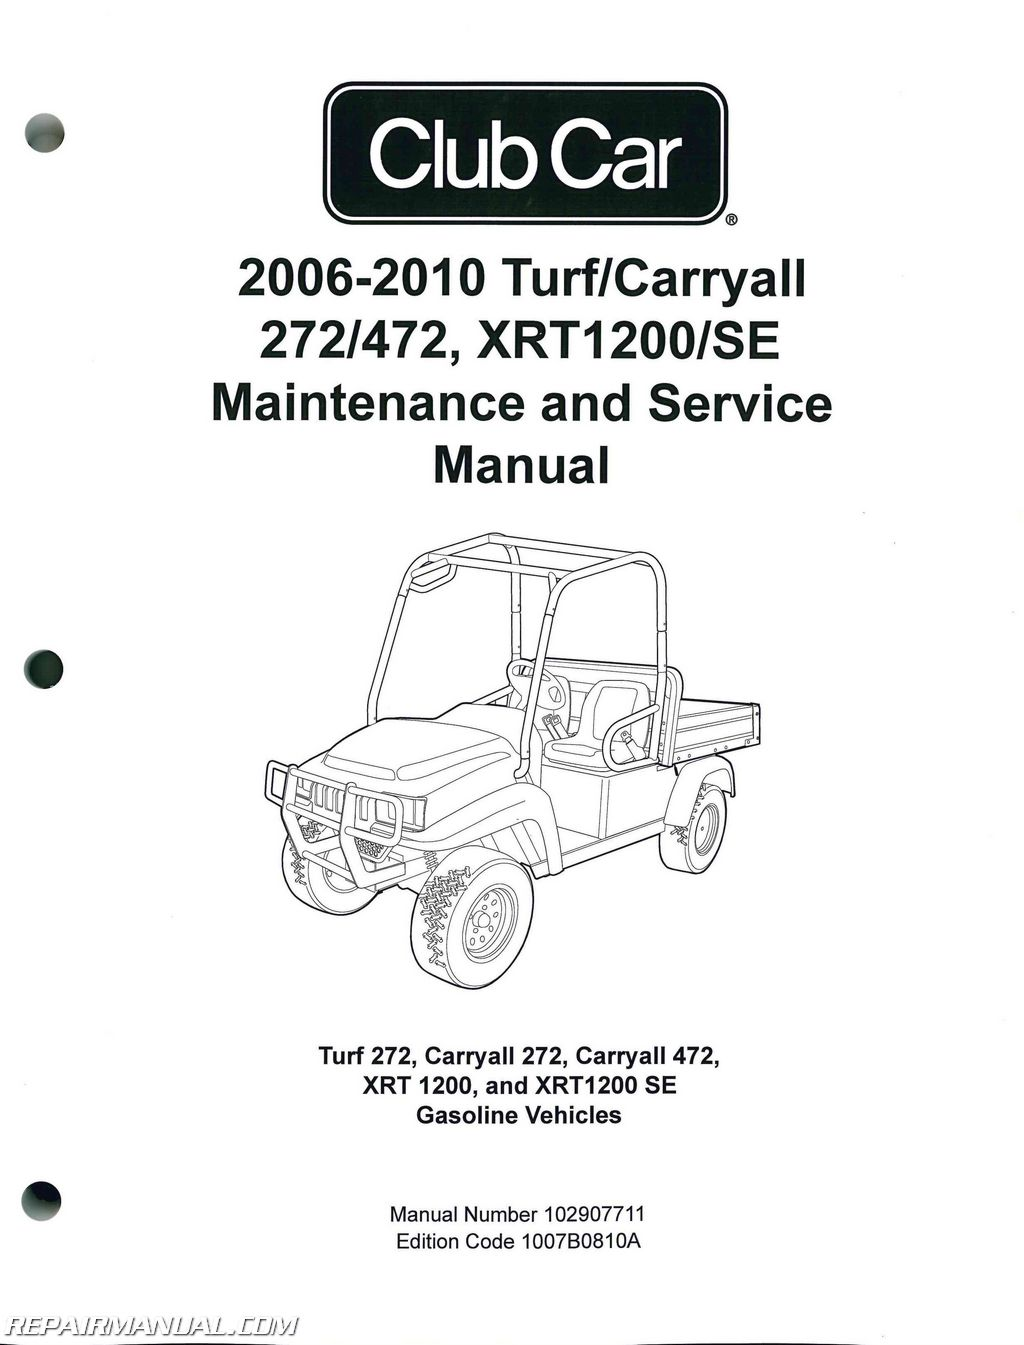 Club Car Turf Carryall 272 472 Xrt Se Turf 272 Carryall 272